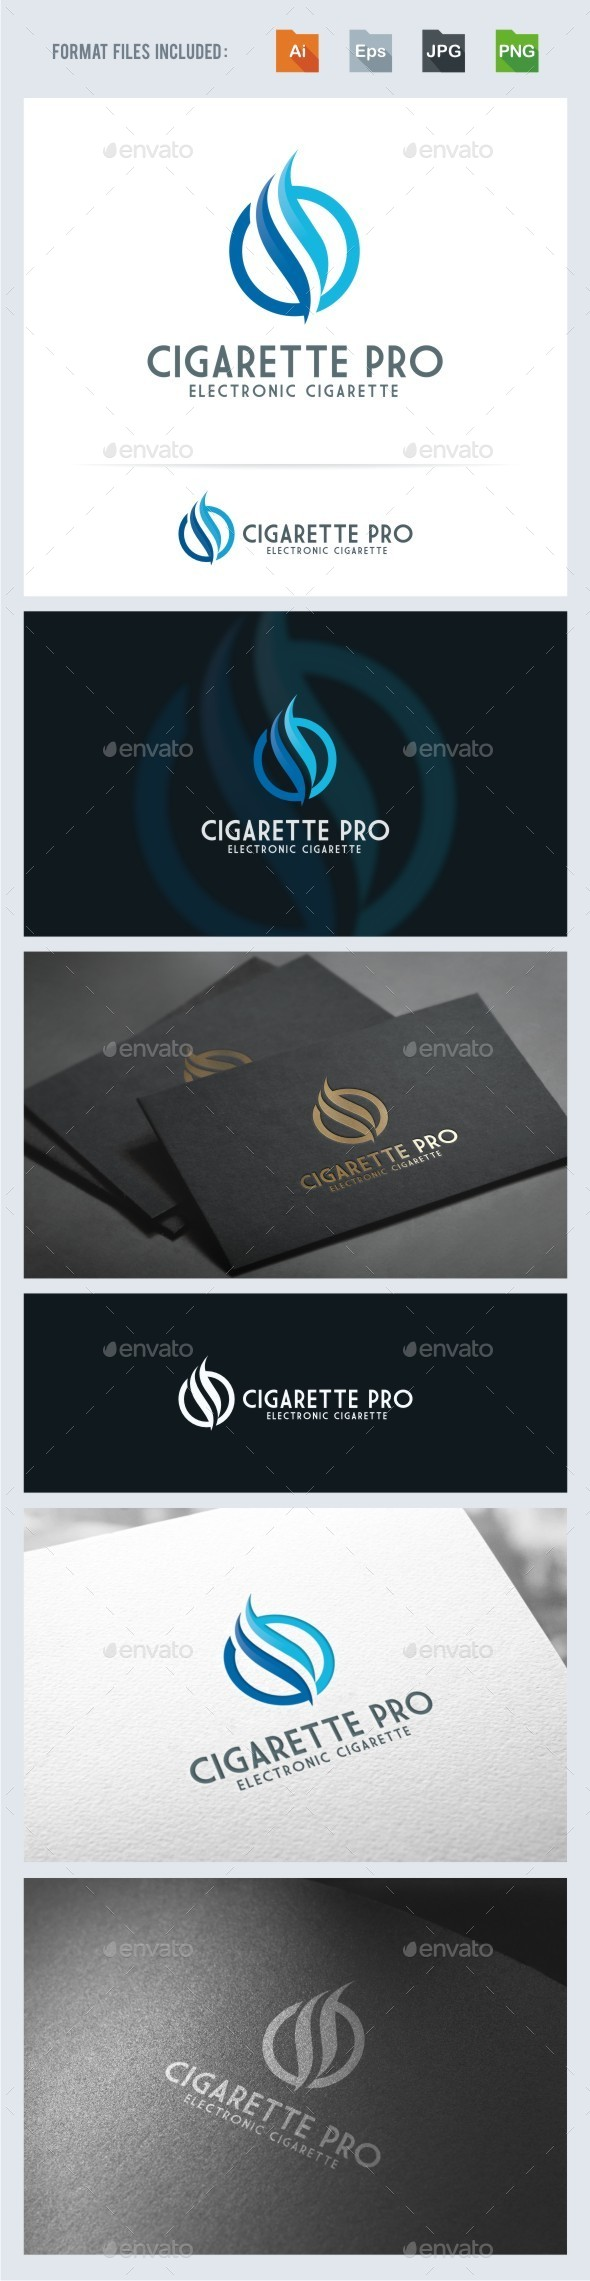 Cigarette - Flame Logo Template